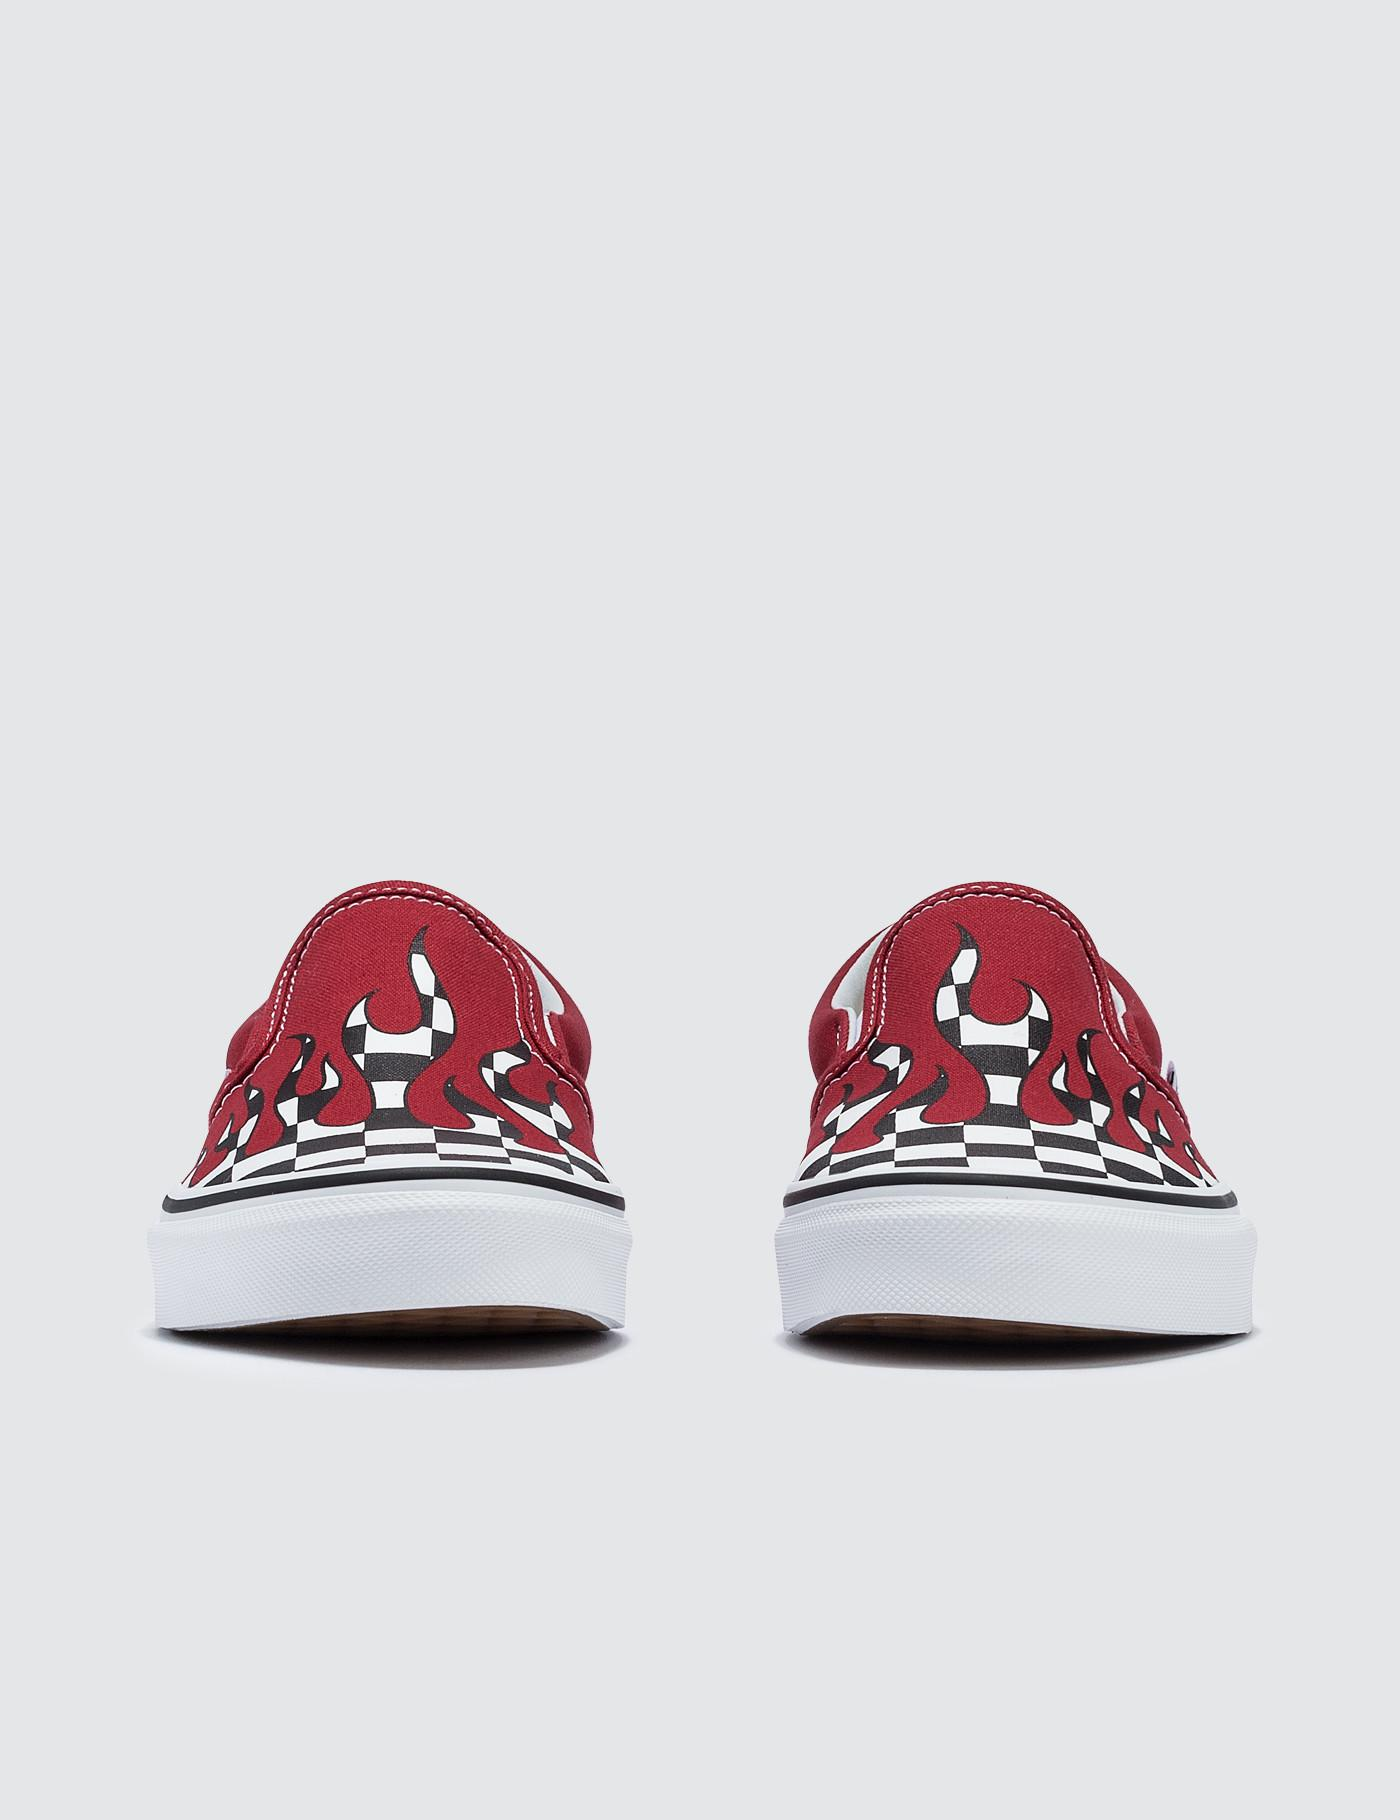 cd4adaee3c7b Lyst - Vans Checker Flame Classic Slip-on in Red